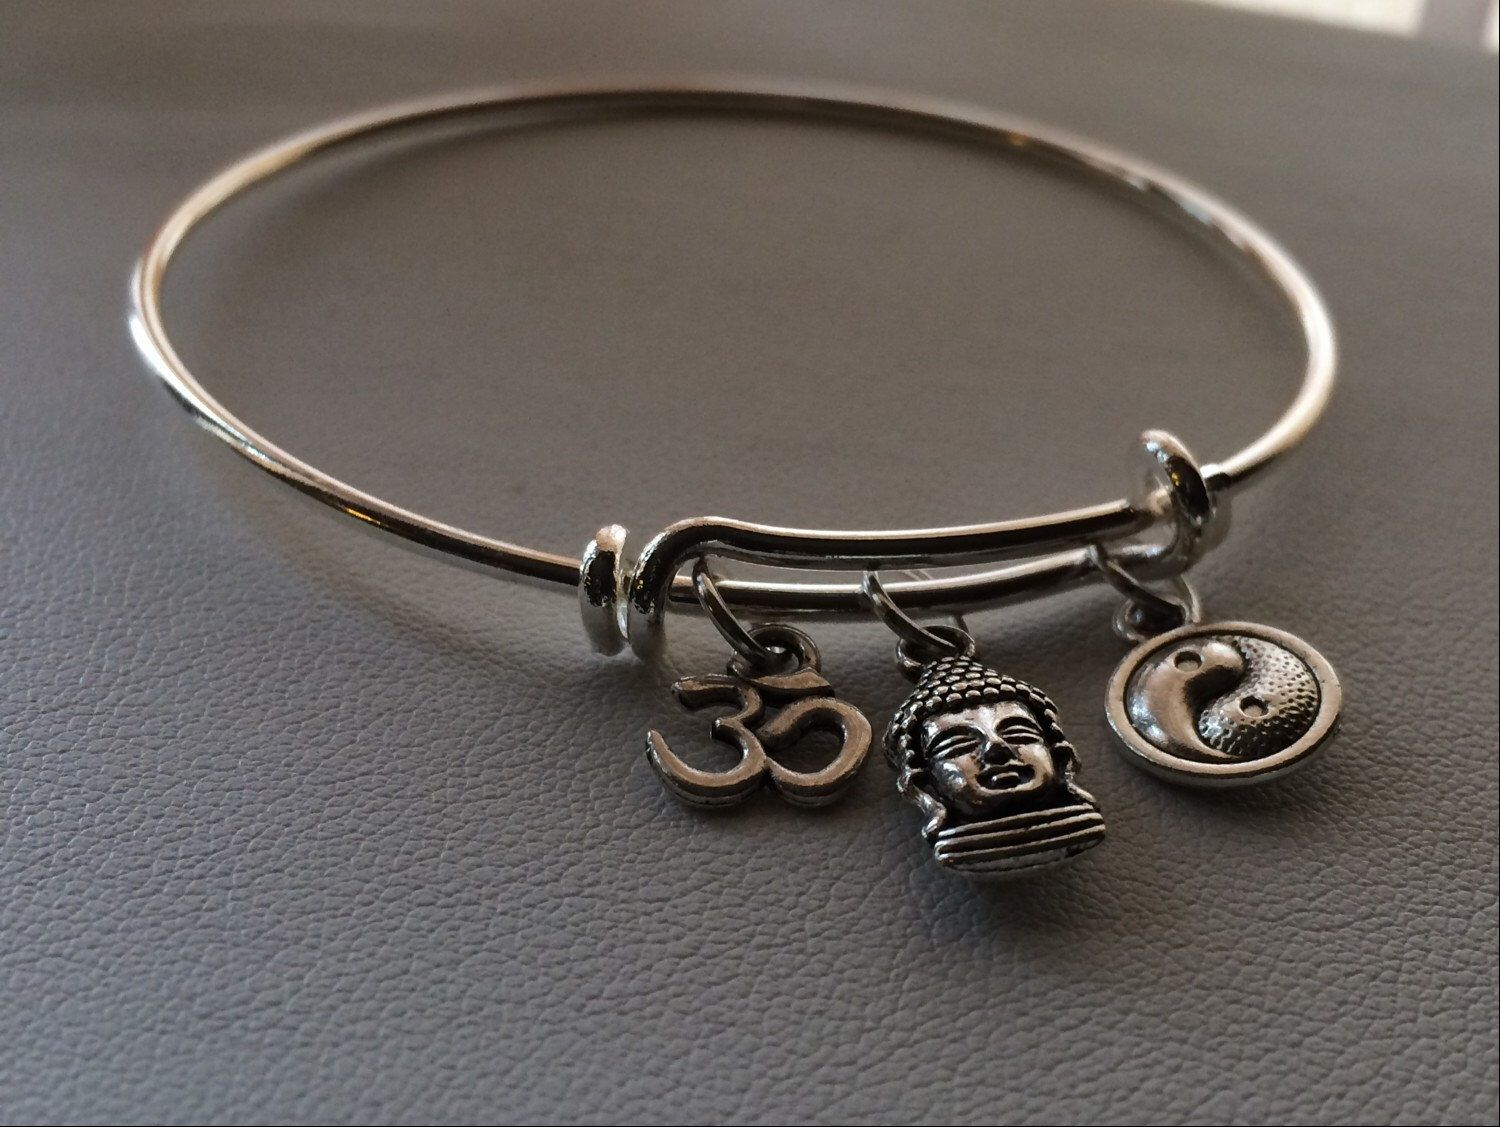 Ohm, Buddha & Ying Yang Charm Bangle - Ohm Bracelet, bali jewelry, yoga jewelry, reiki jewelry, buddha bracelet, namaste jewelry by AlyChrisBoutique on Etsy https://www.etsy.com/listing/218499810/ohm-buddha-ying-yang-charm-bangle-ohm